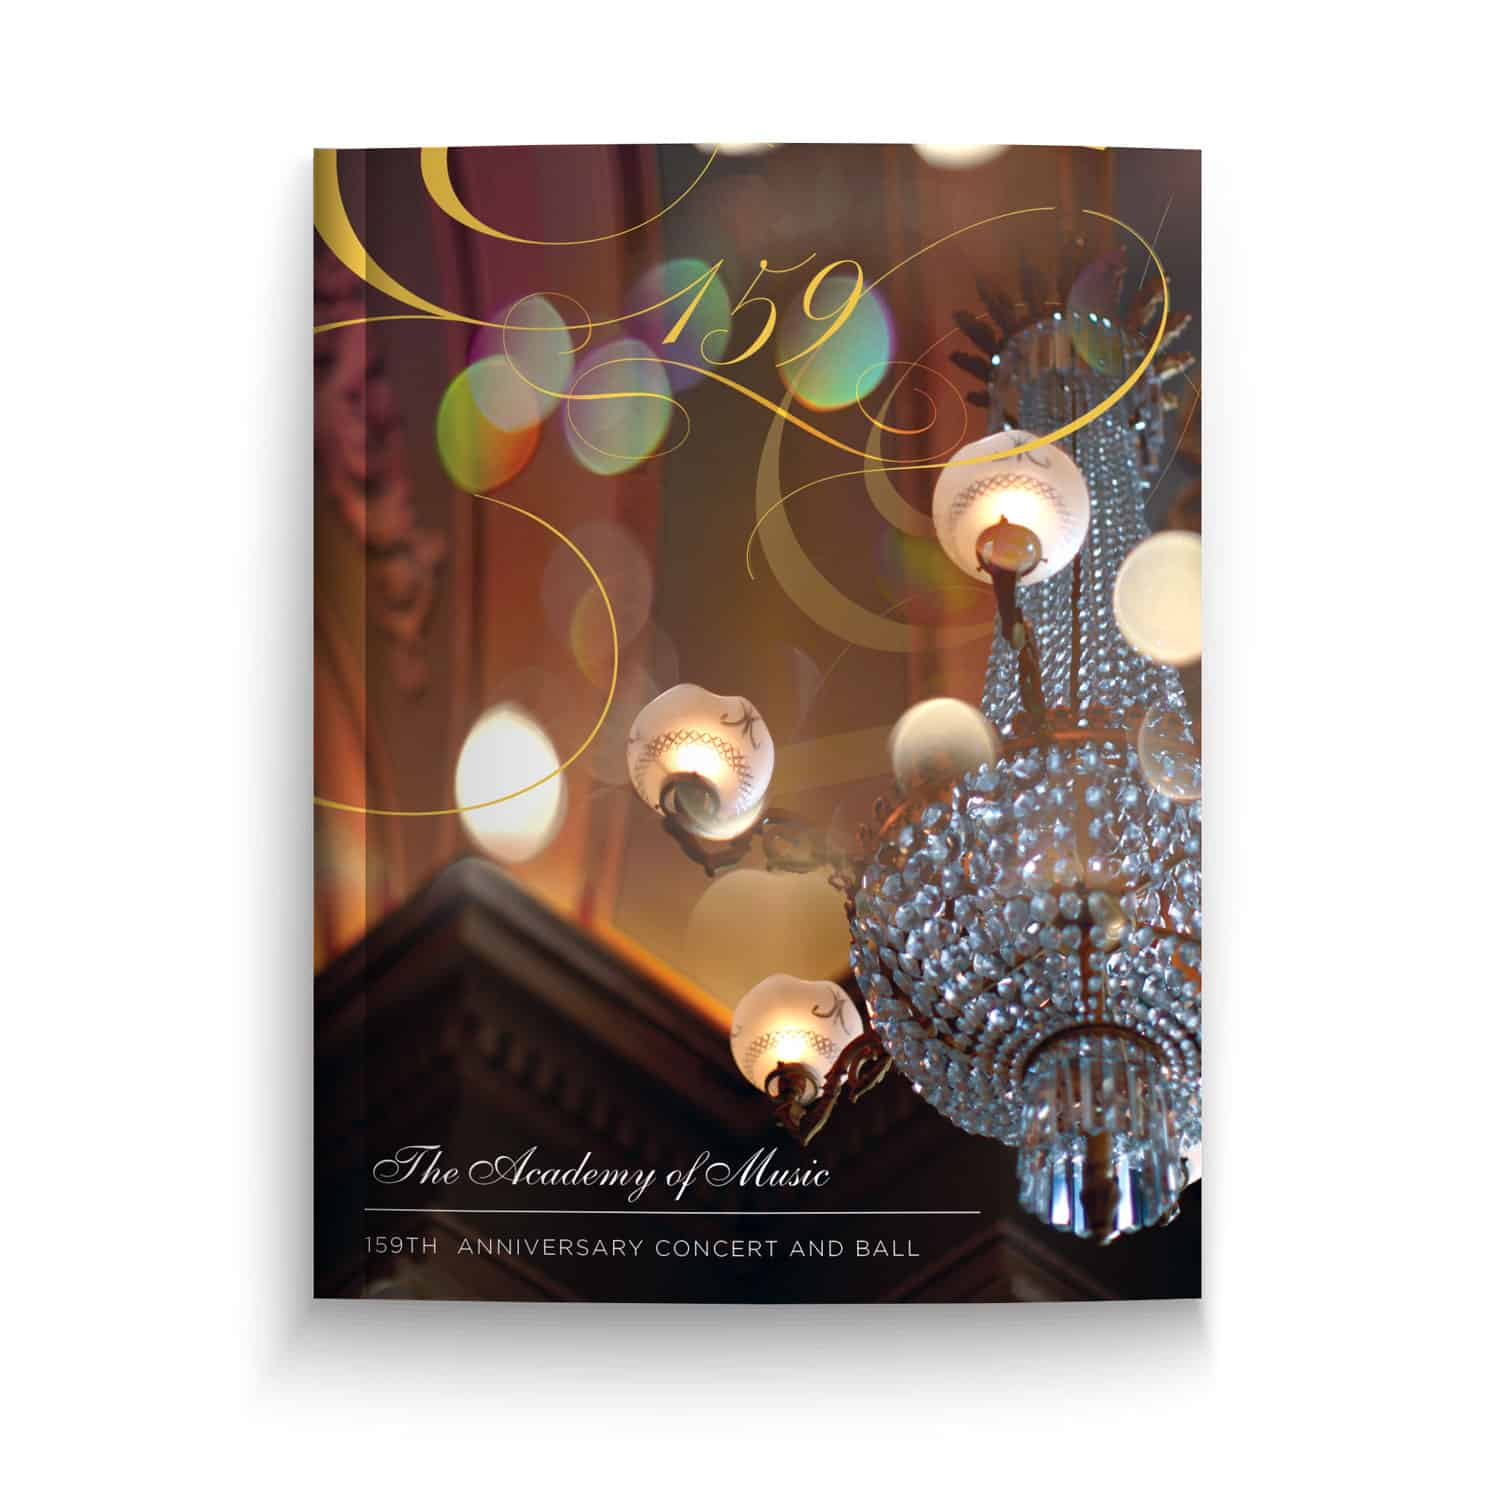 Academy of Music, 159th Anniversary Concert and Ball Program Book